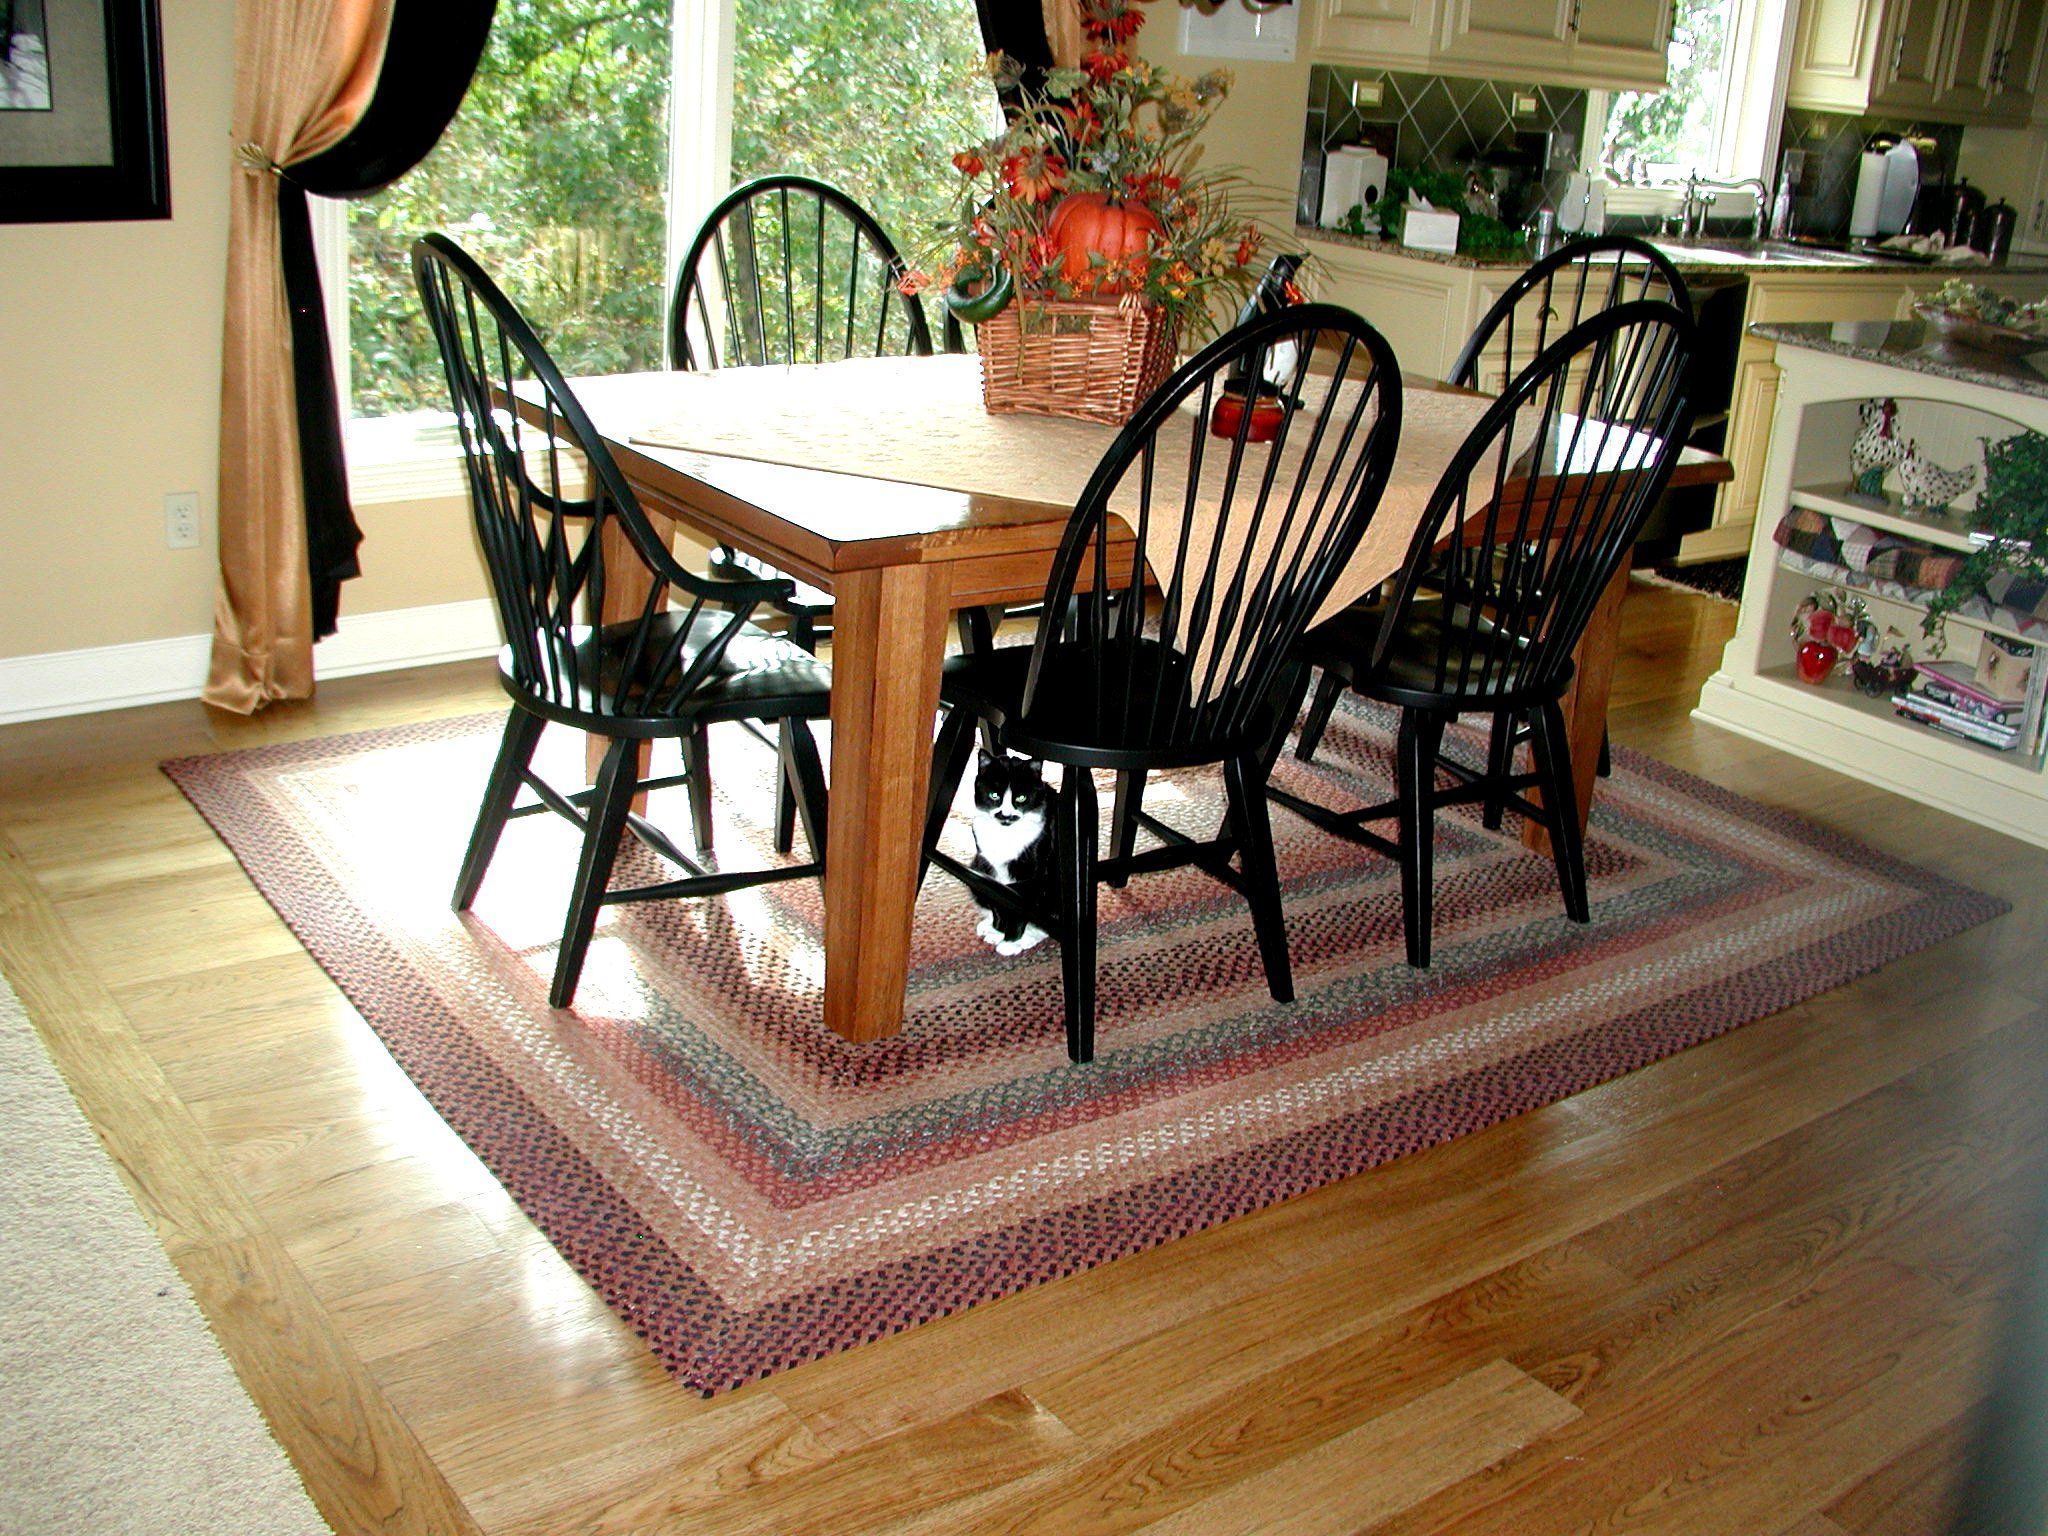 Braided Indoor Outdoor Rugs From Kaleen Available At The Rug Mall In Aberdeen NJ Or